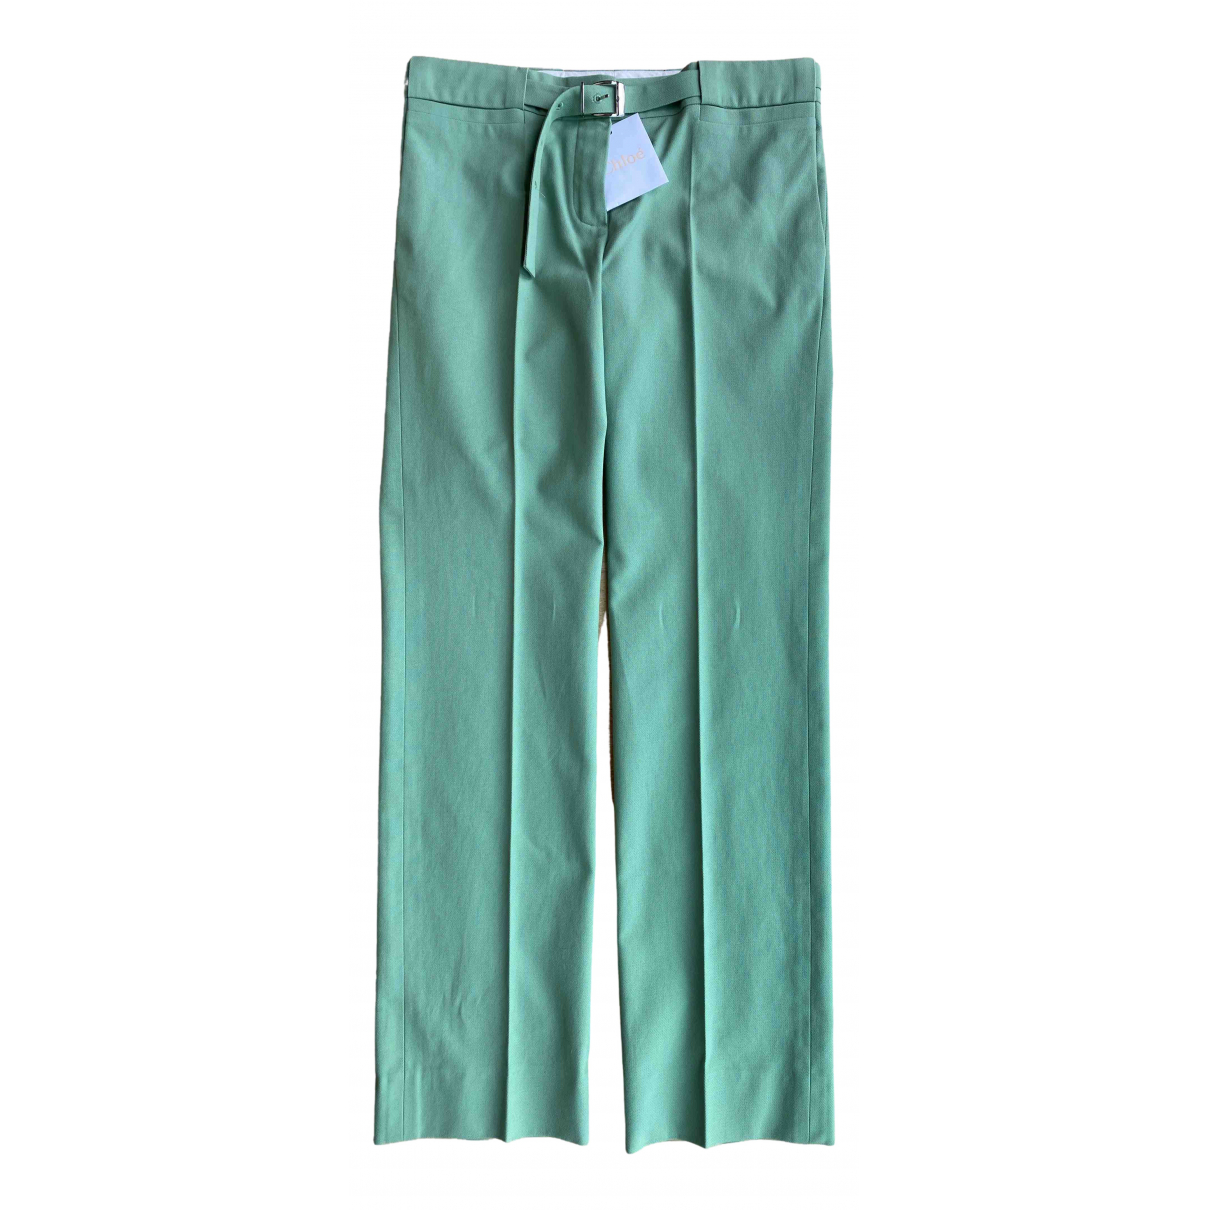 Chloé \N Green Cotton Trousers for Women 40 FR